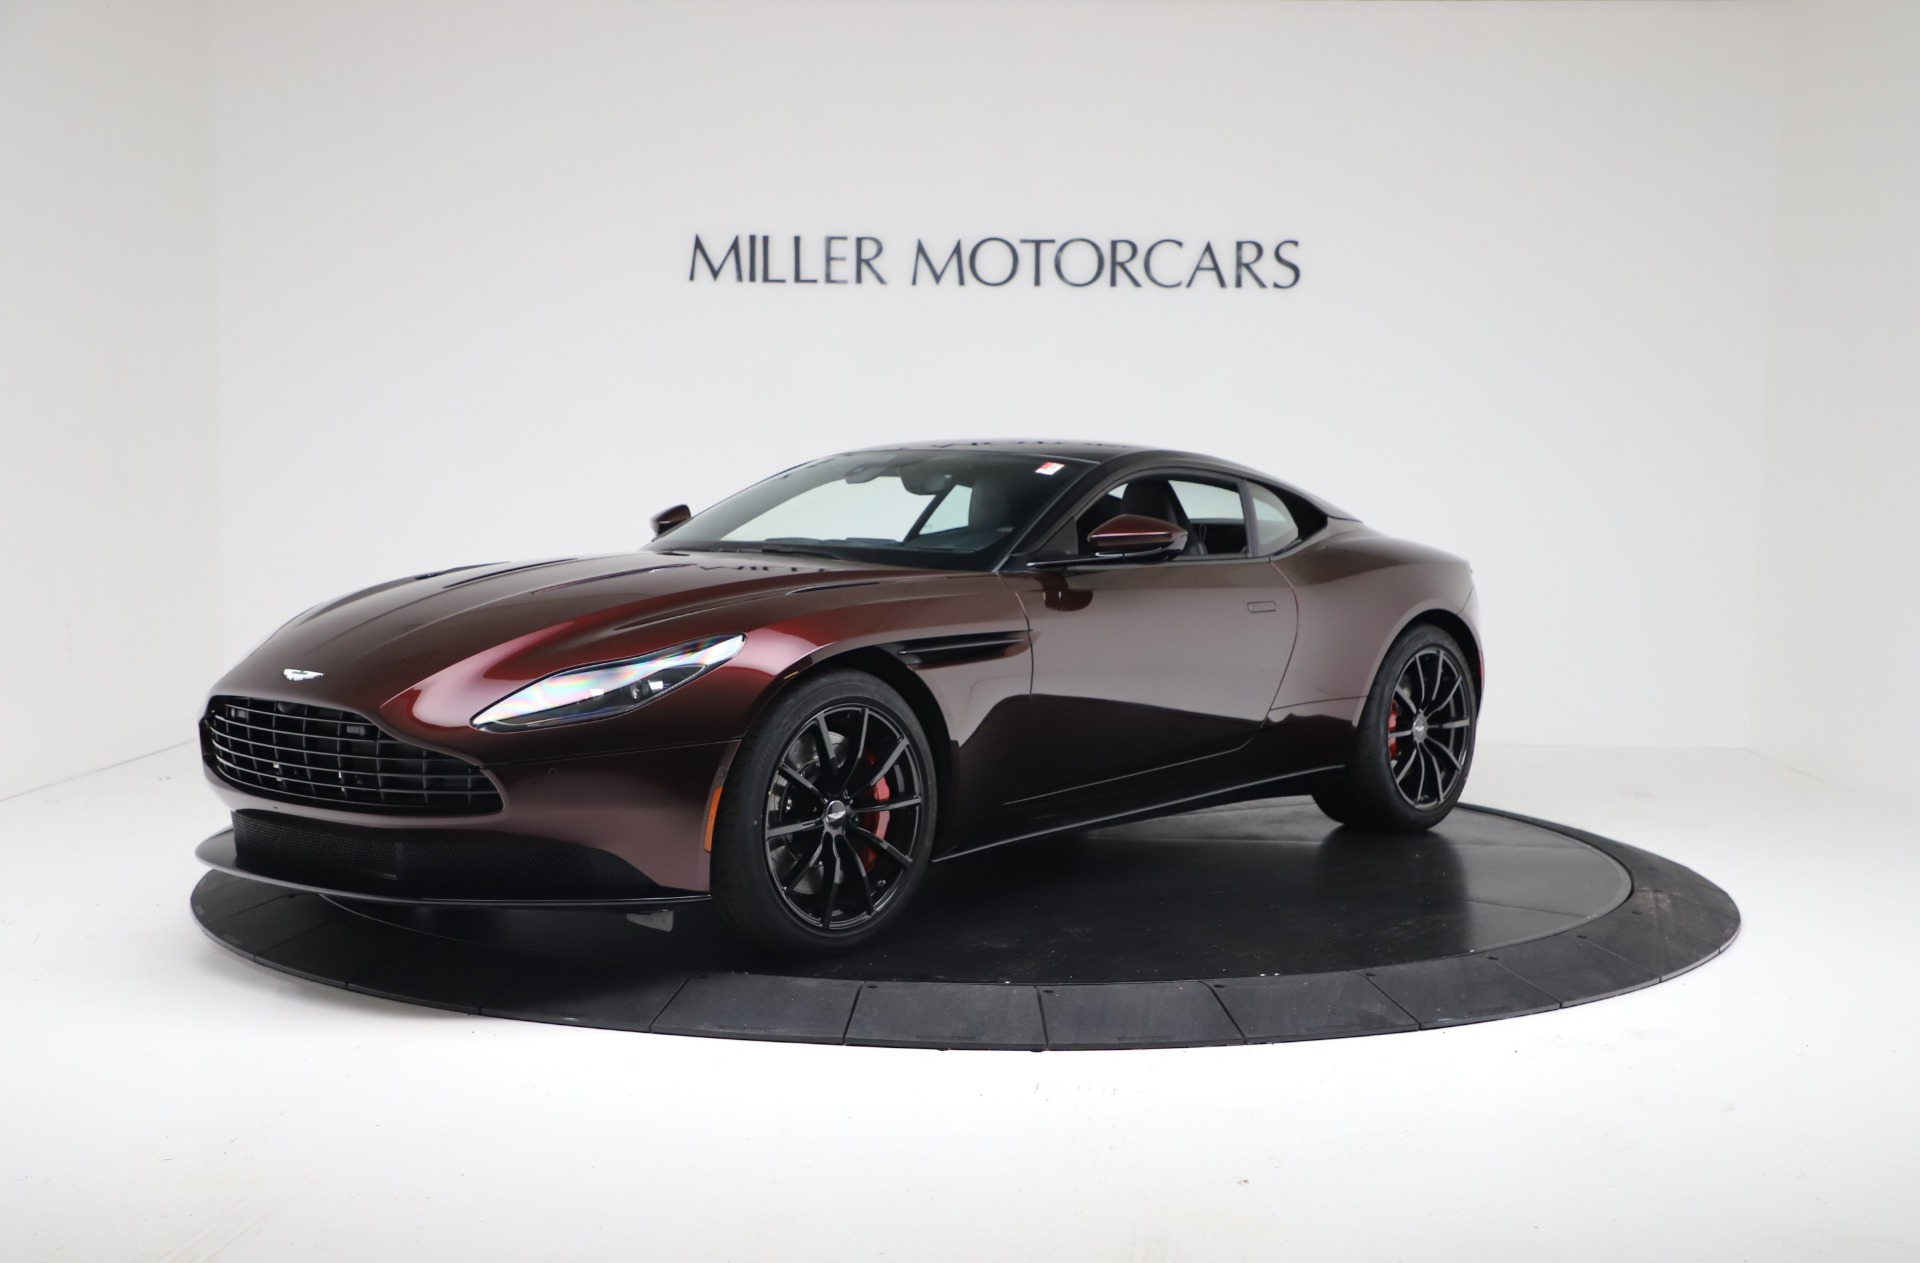 New 2019 Aston Martin Db11 V12 Amr Coupe For Sale 263 916 Mclaren Greenwich Stock A1394